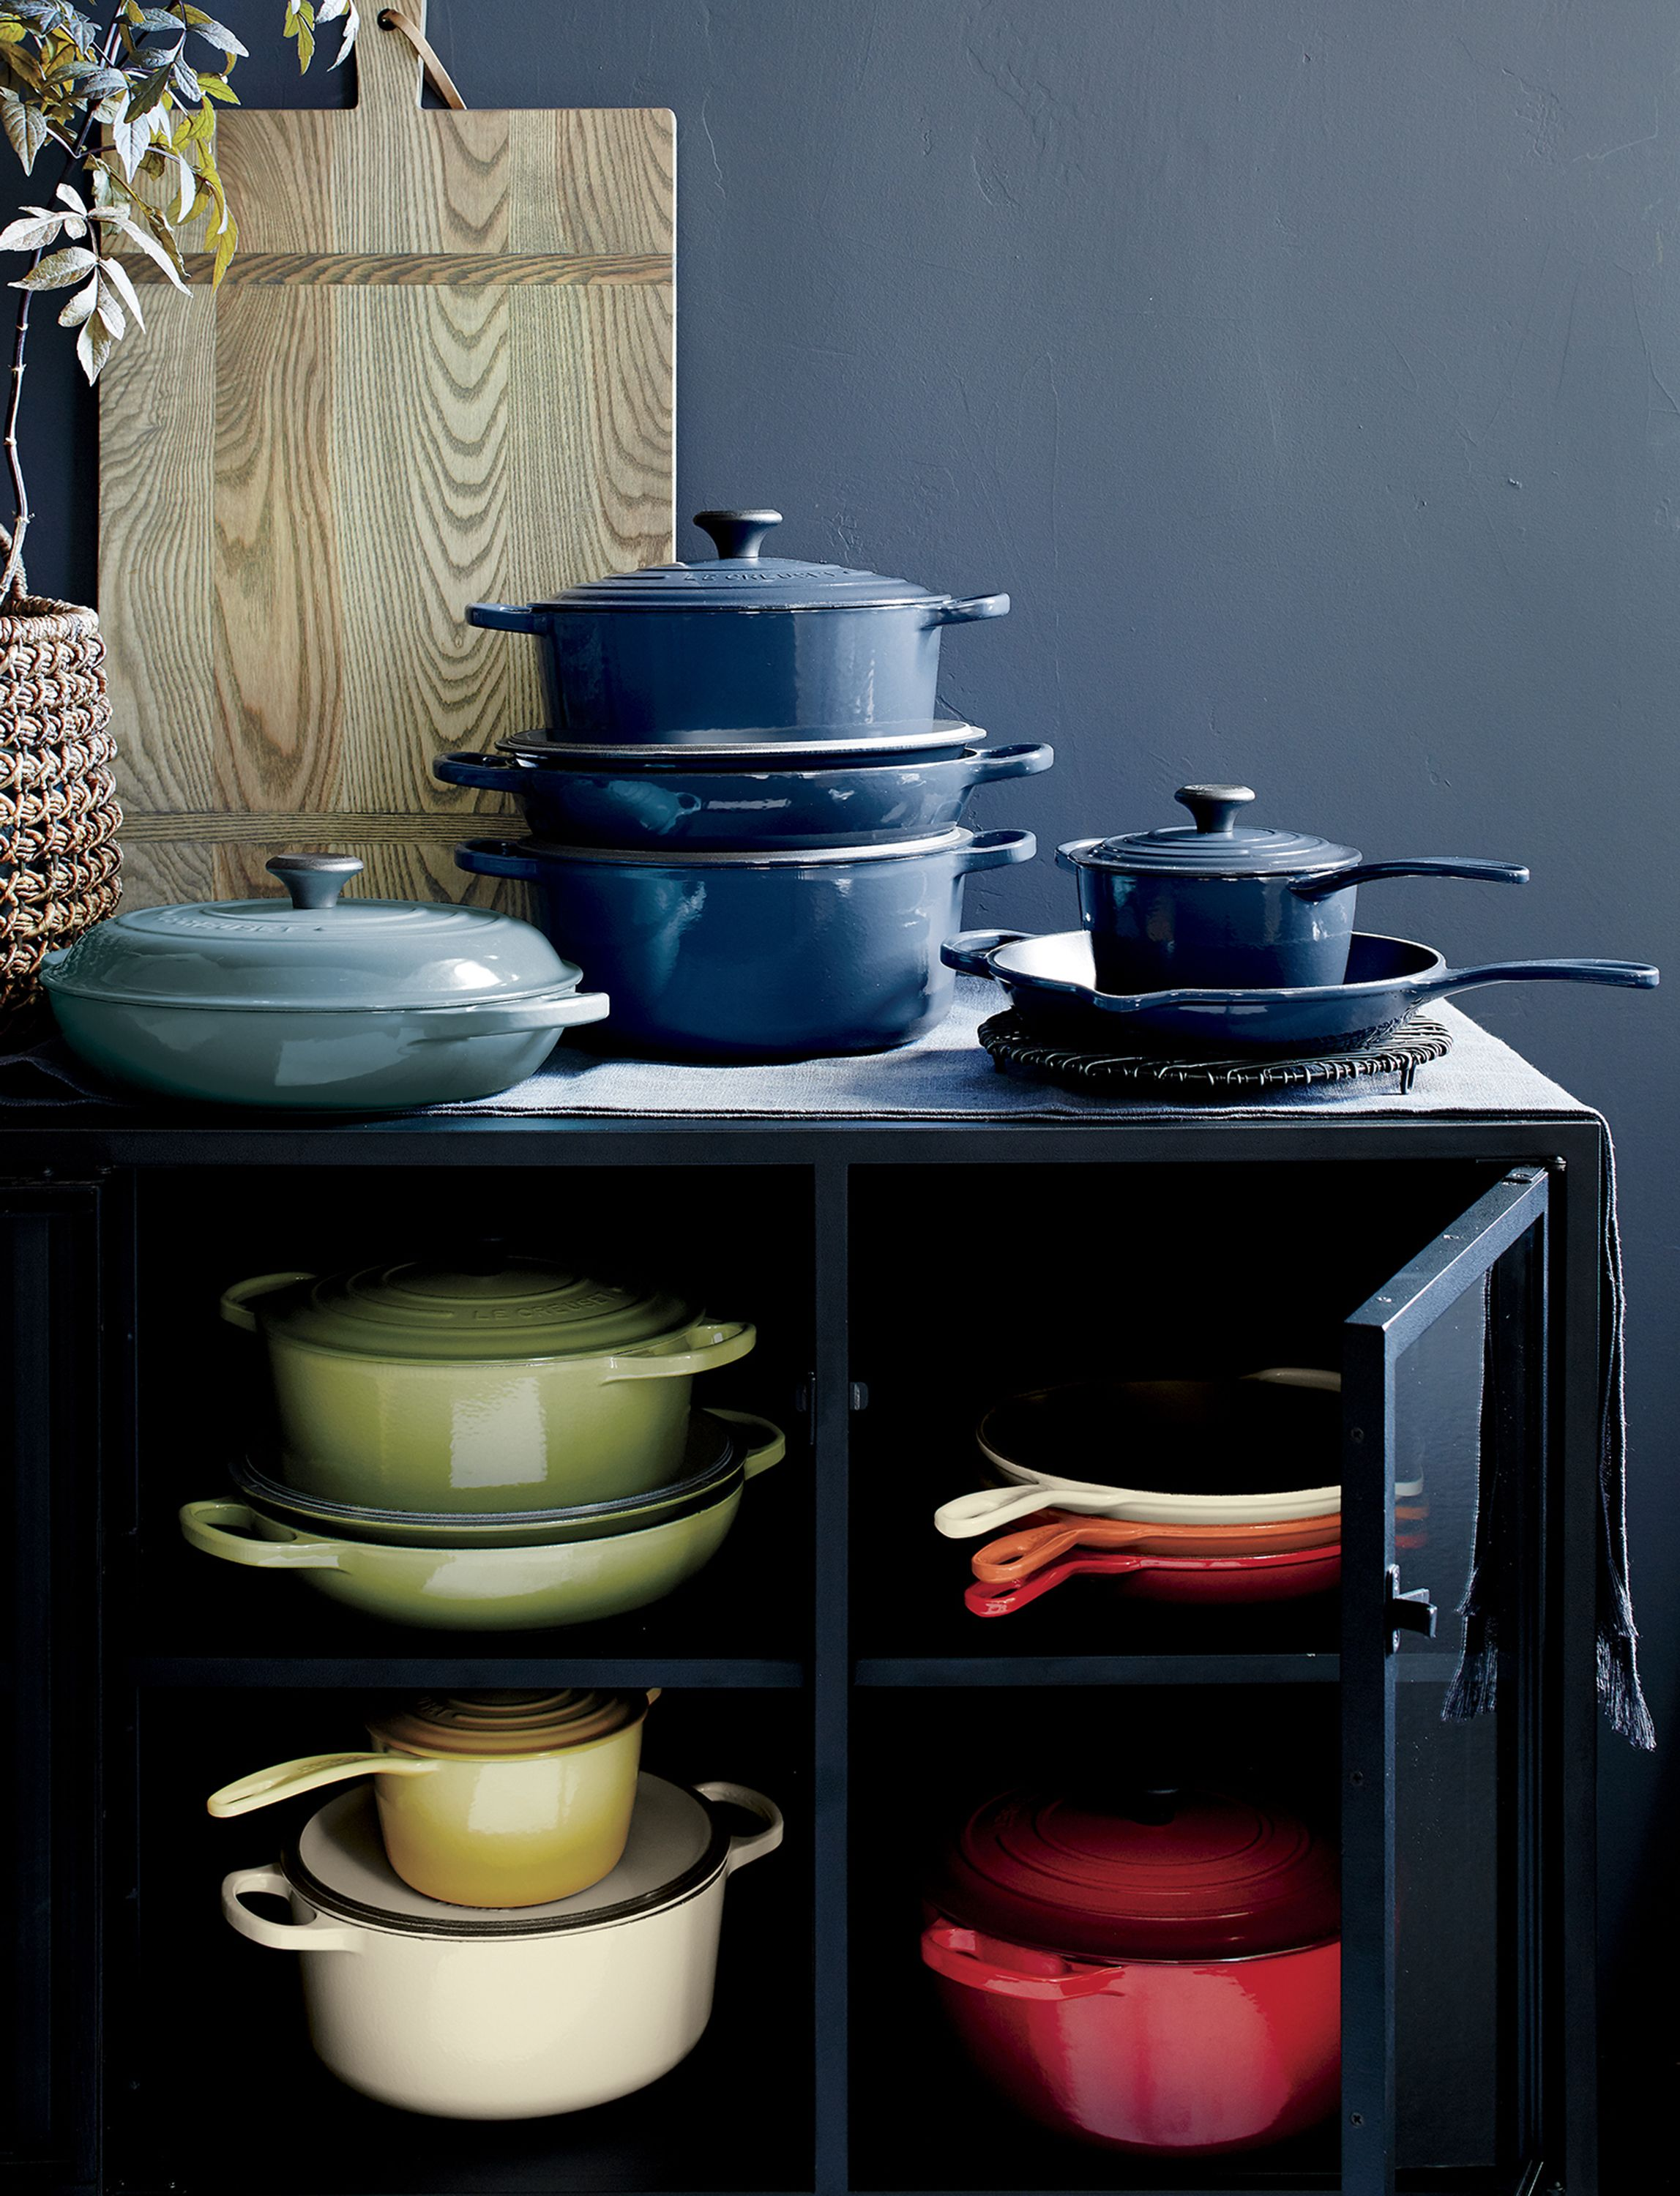 Le Creuset Cookware Crate And Barrel Lets Cook With Confidence. Trusted In